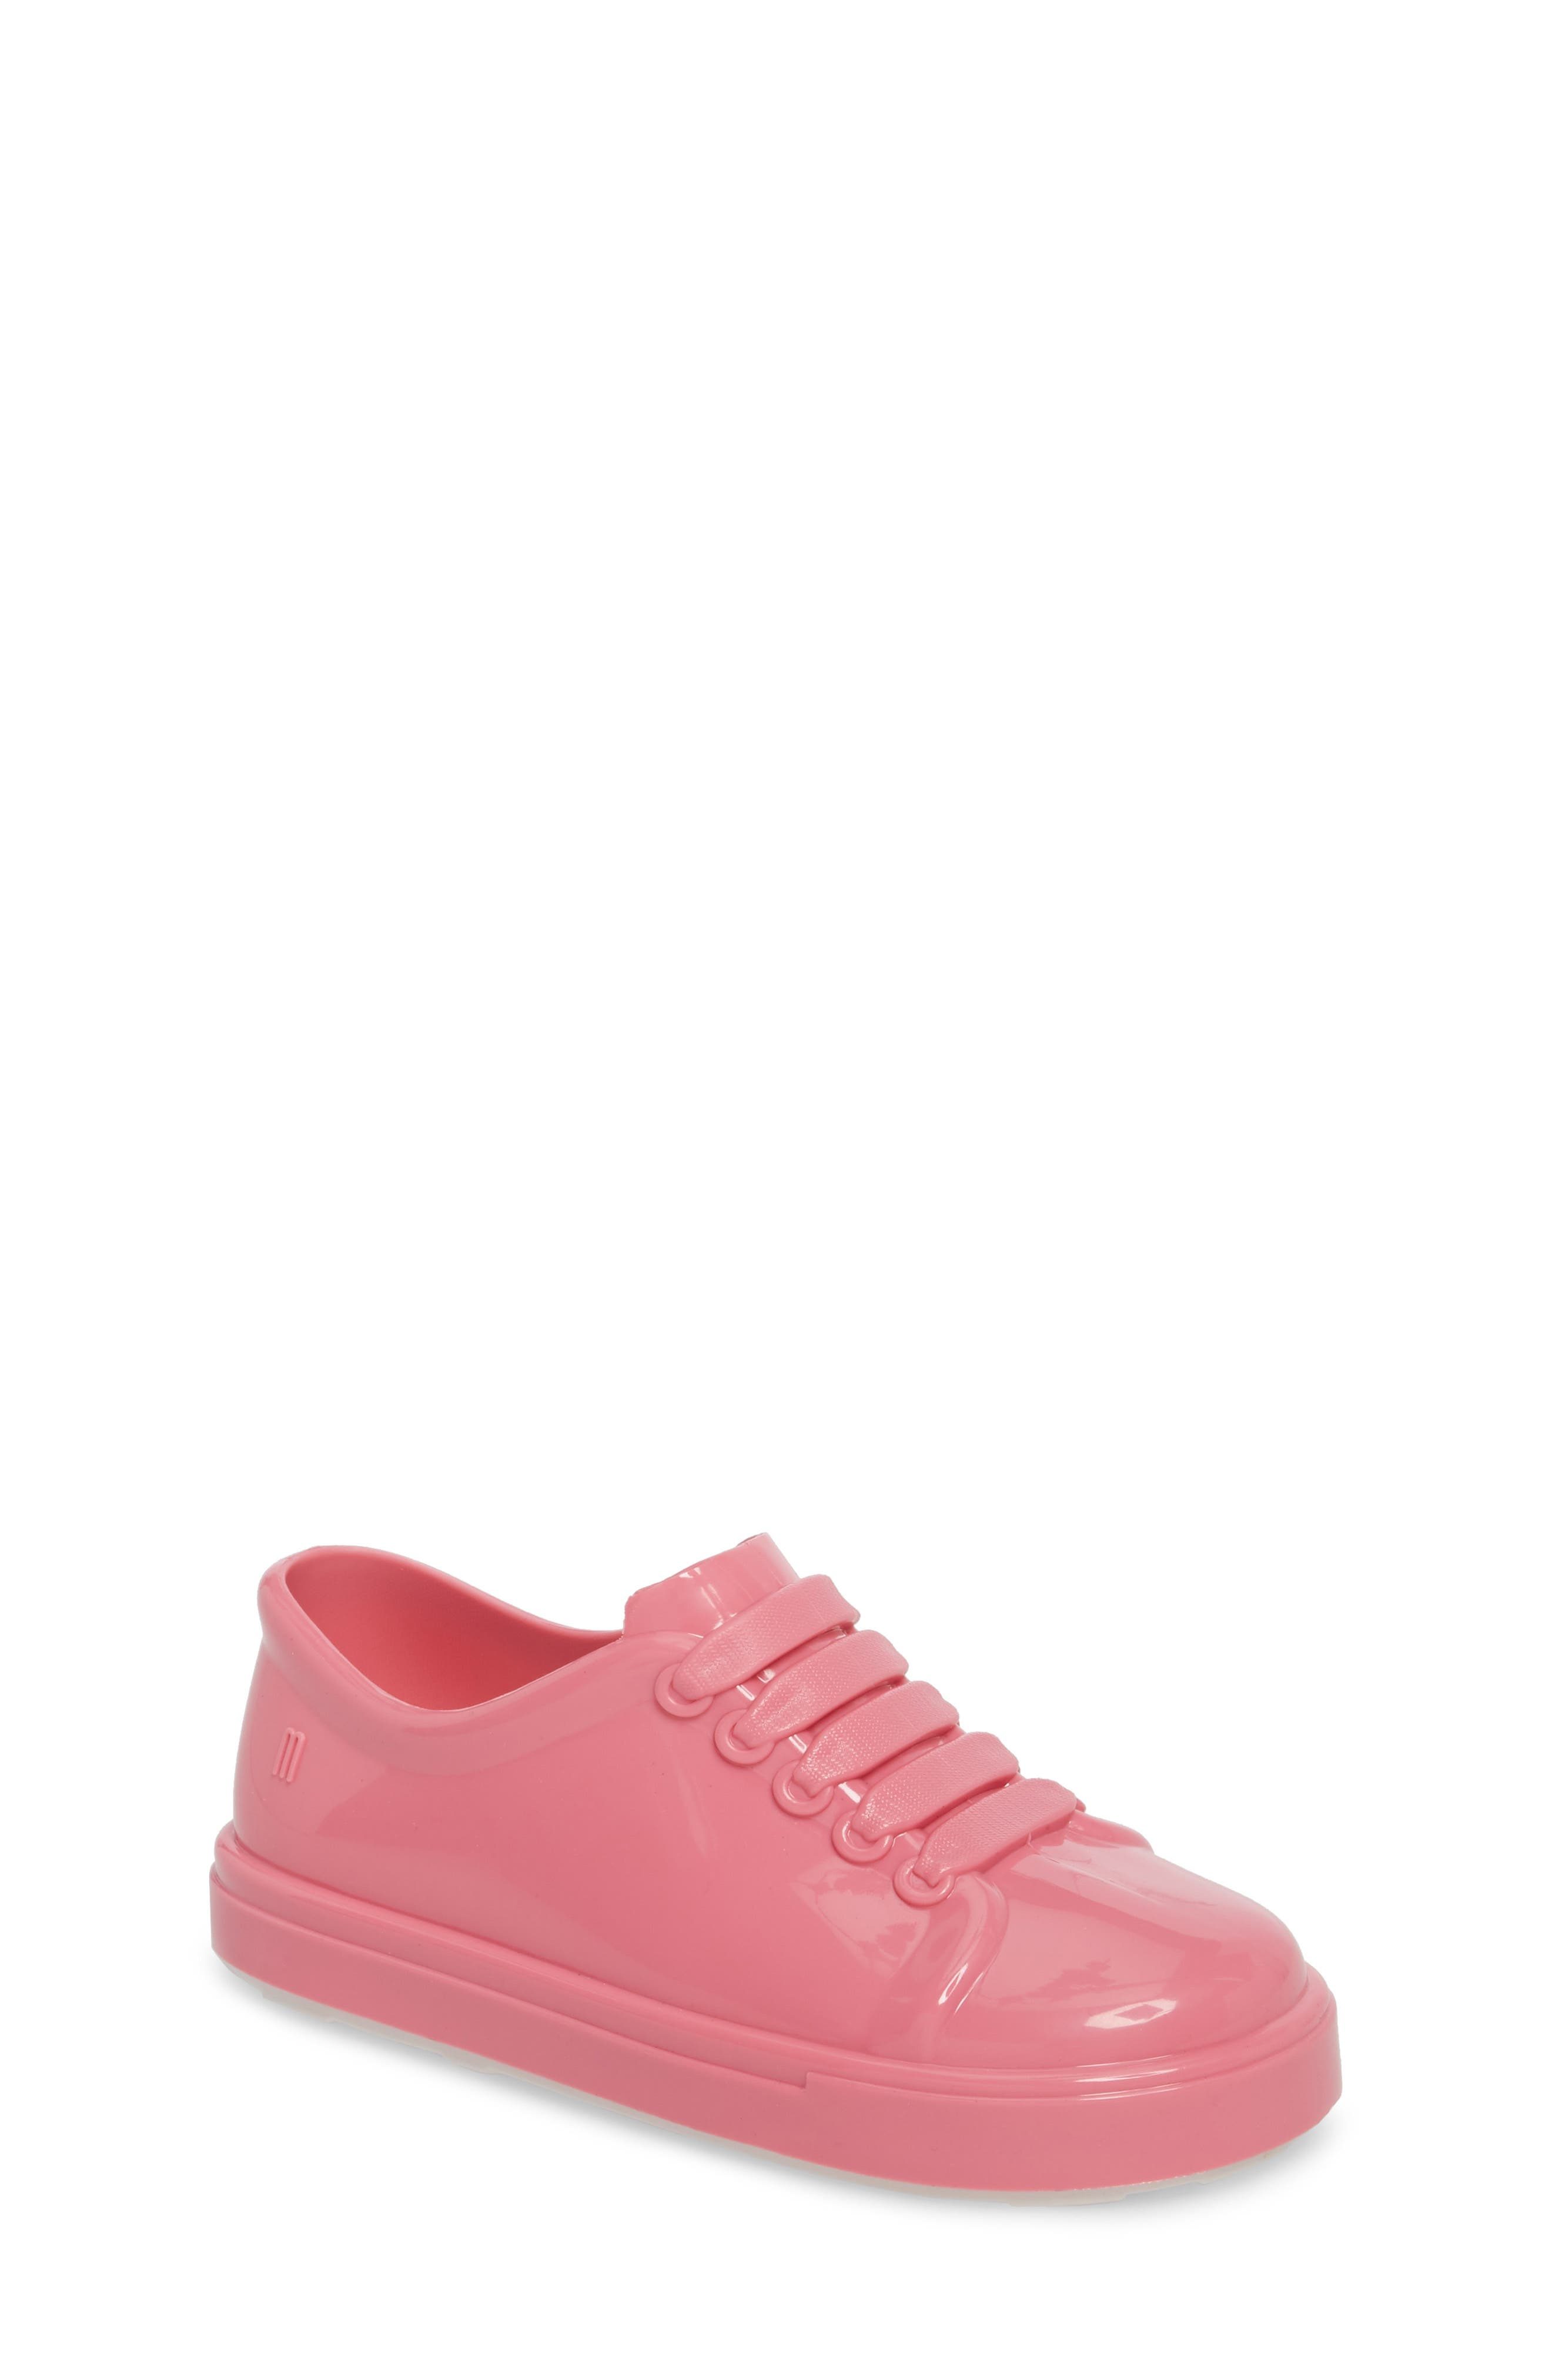 Be Slip-On Sneaker,                             Main thumbnail 1, color,                             Pink Candy